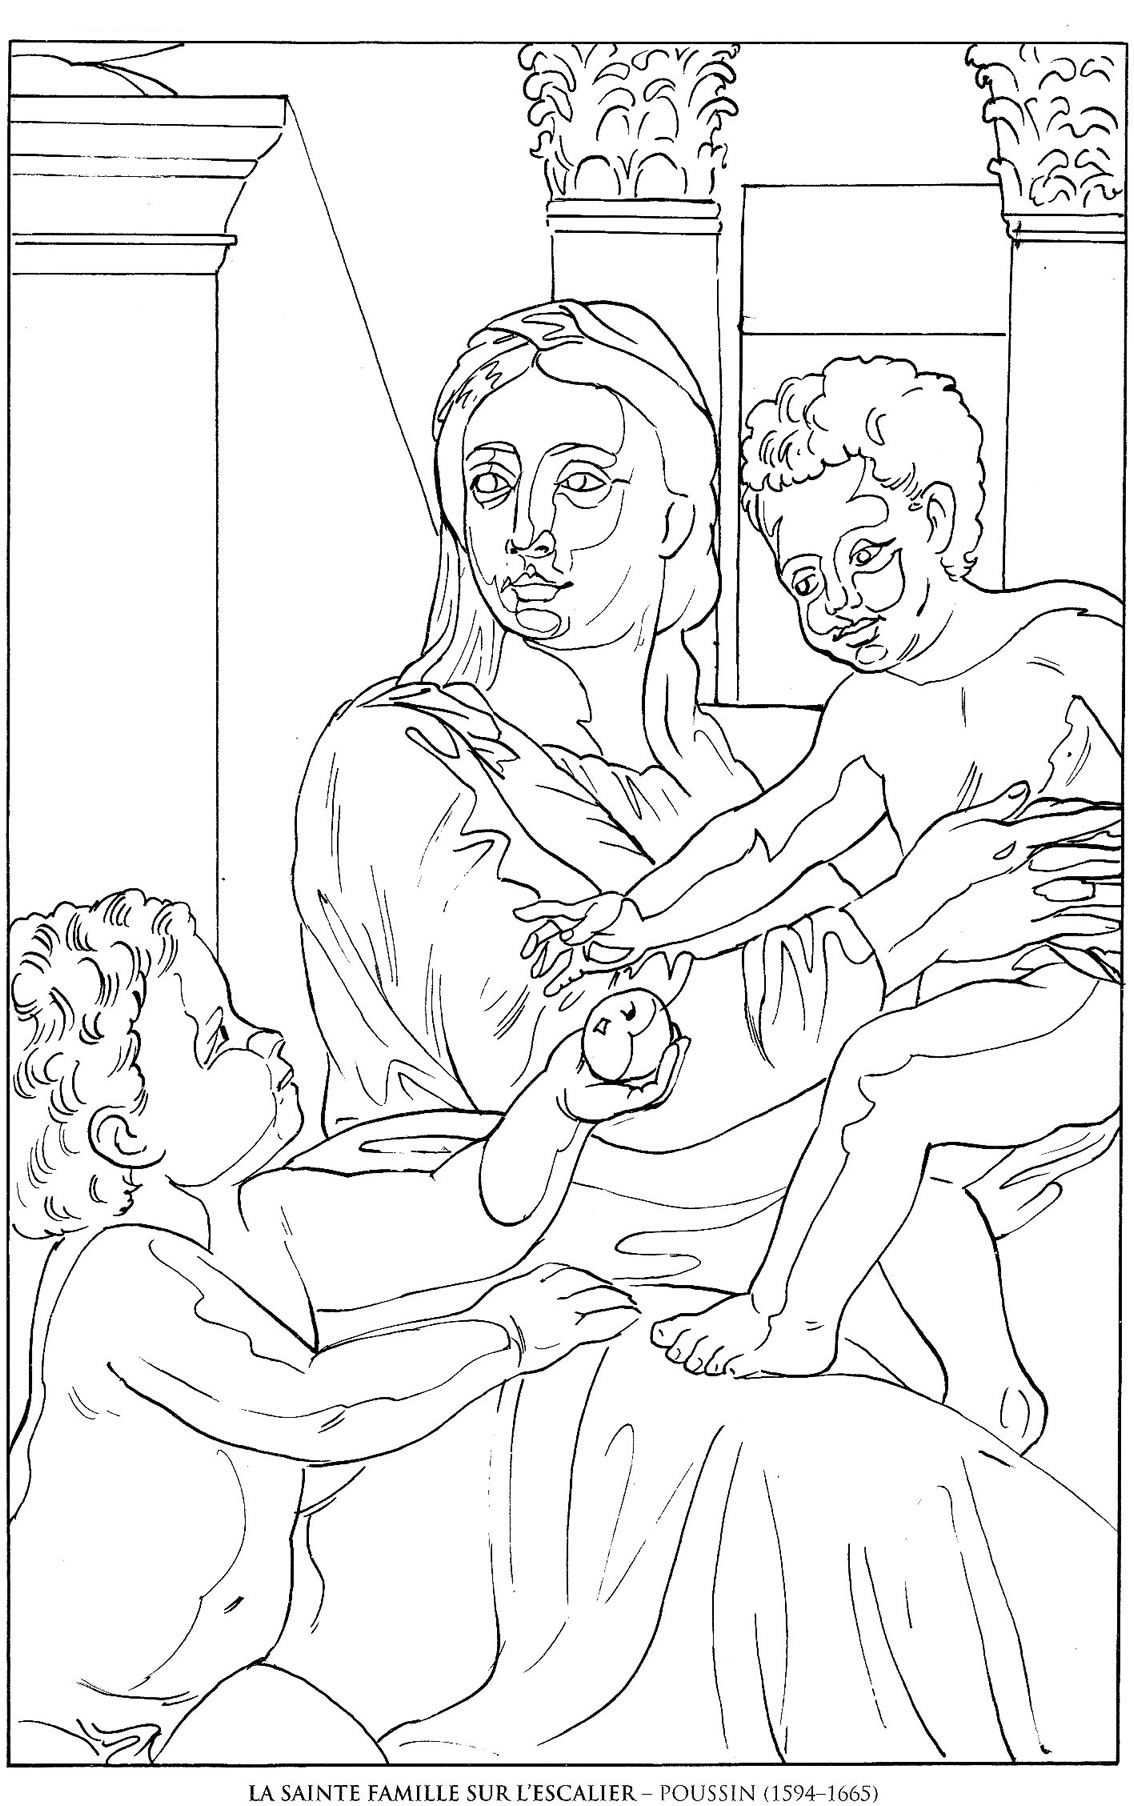 Coloring Pages Coloring Pages Of Famous Paintings famous paintings coloring pages eassume com eassume